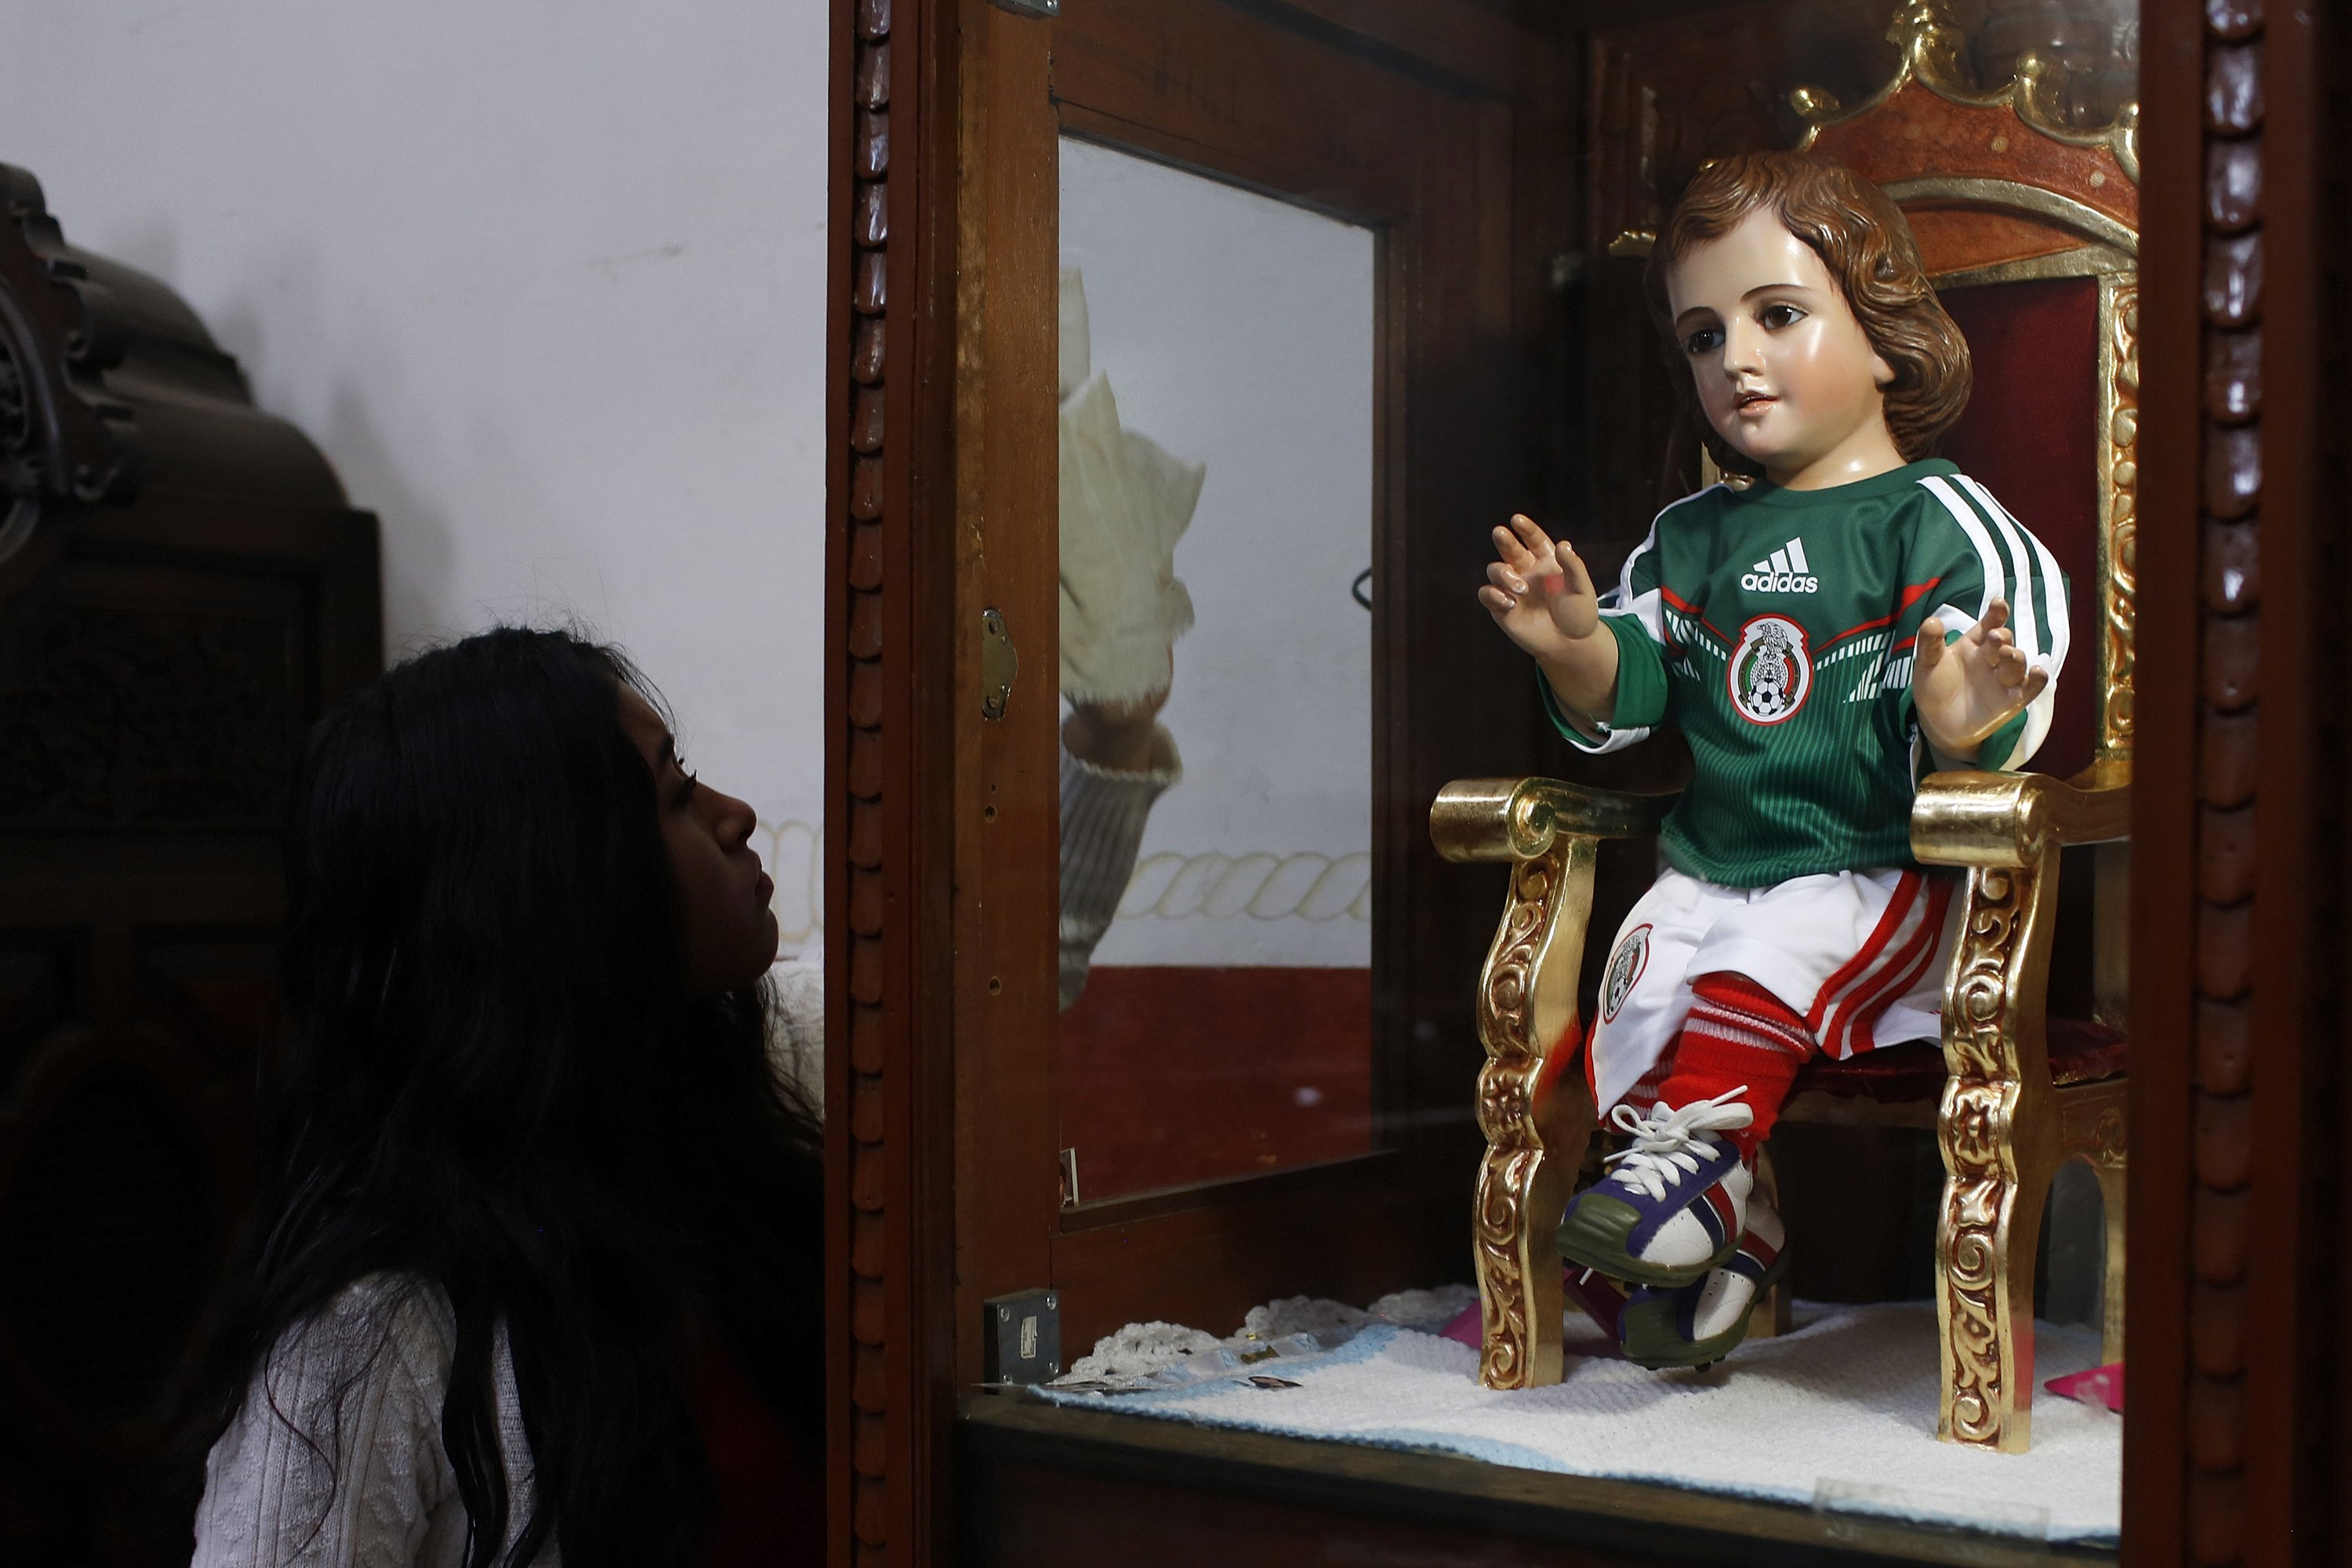 A woman cleans a glass cabinet with a baby Jesus statue dressed in a version of the national soccer team jersey at a church in Mexico City on June 12, 2014.